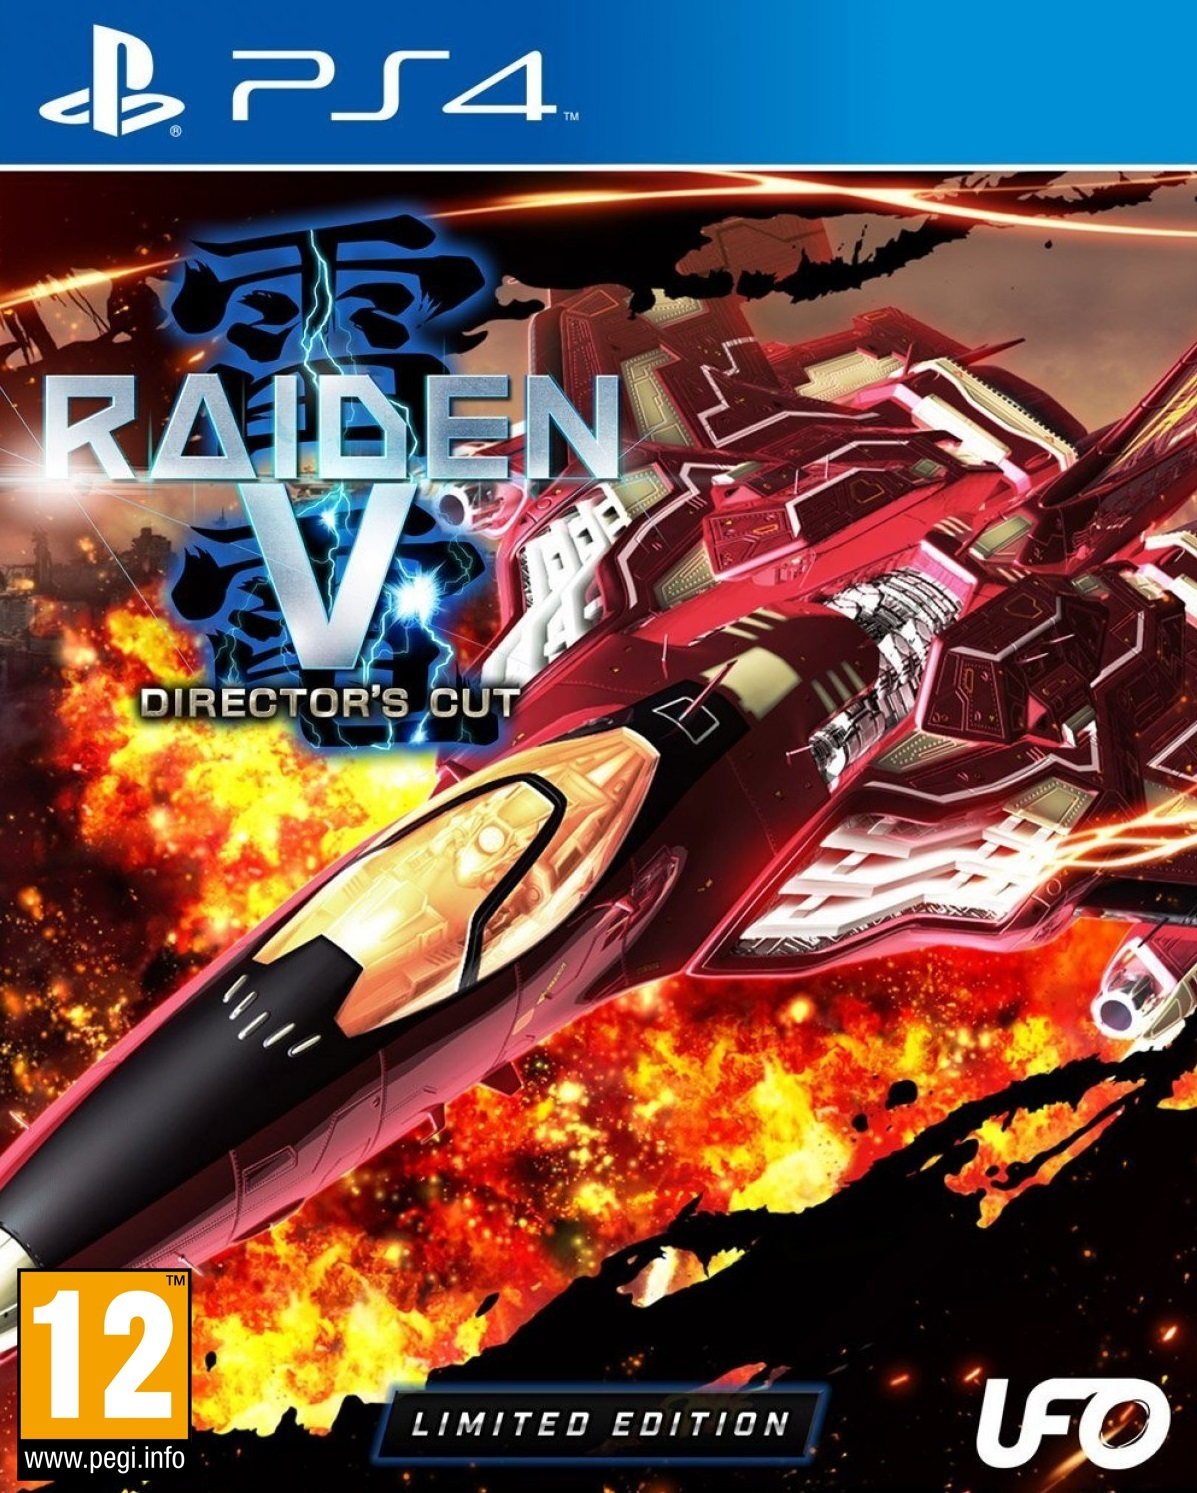 Raiden V: Director's Cut Limited Edition for PS4 image